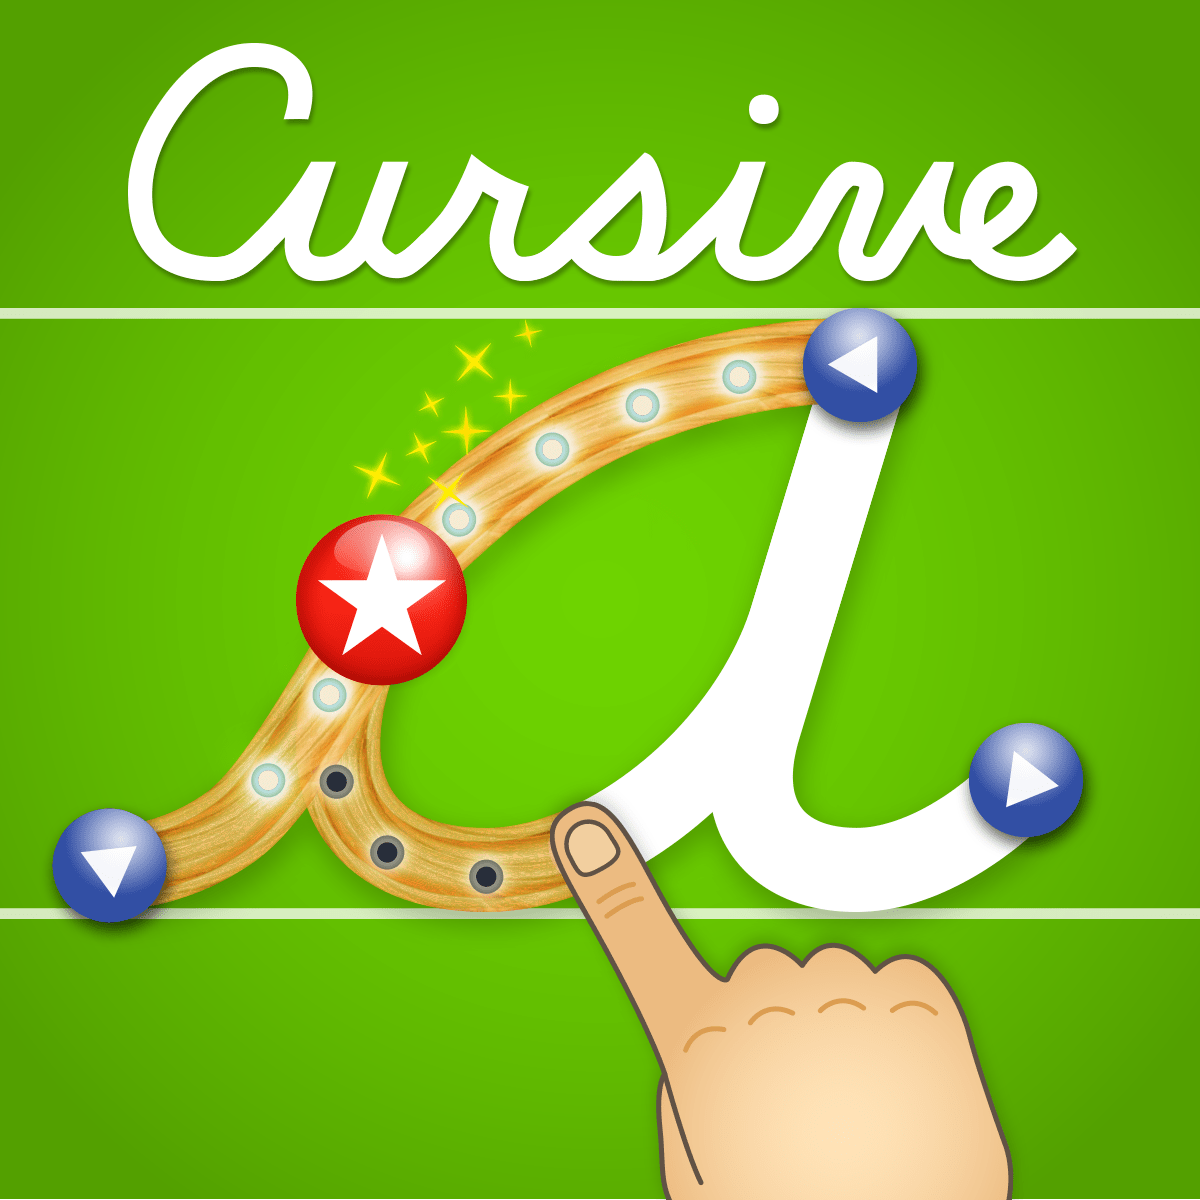 The Benefits Of The New Letterschool Cursive Writing App